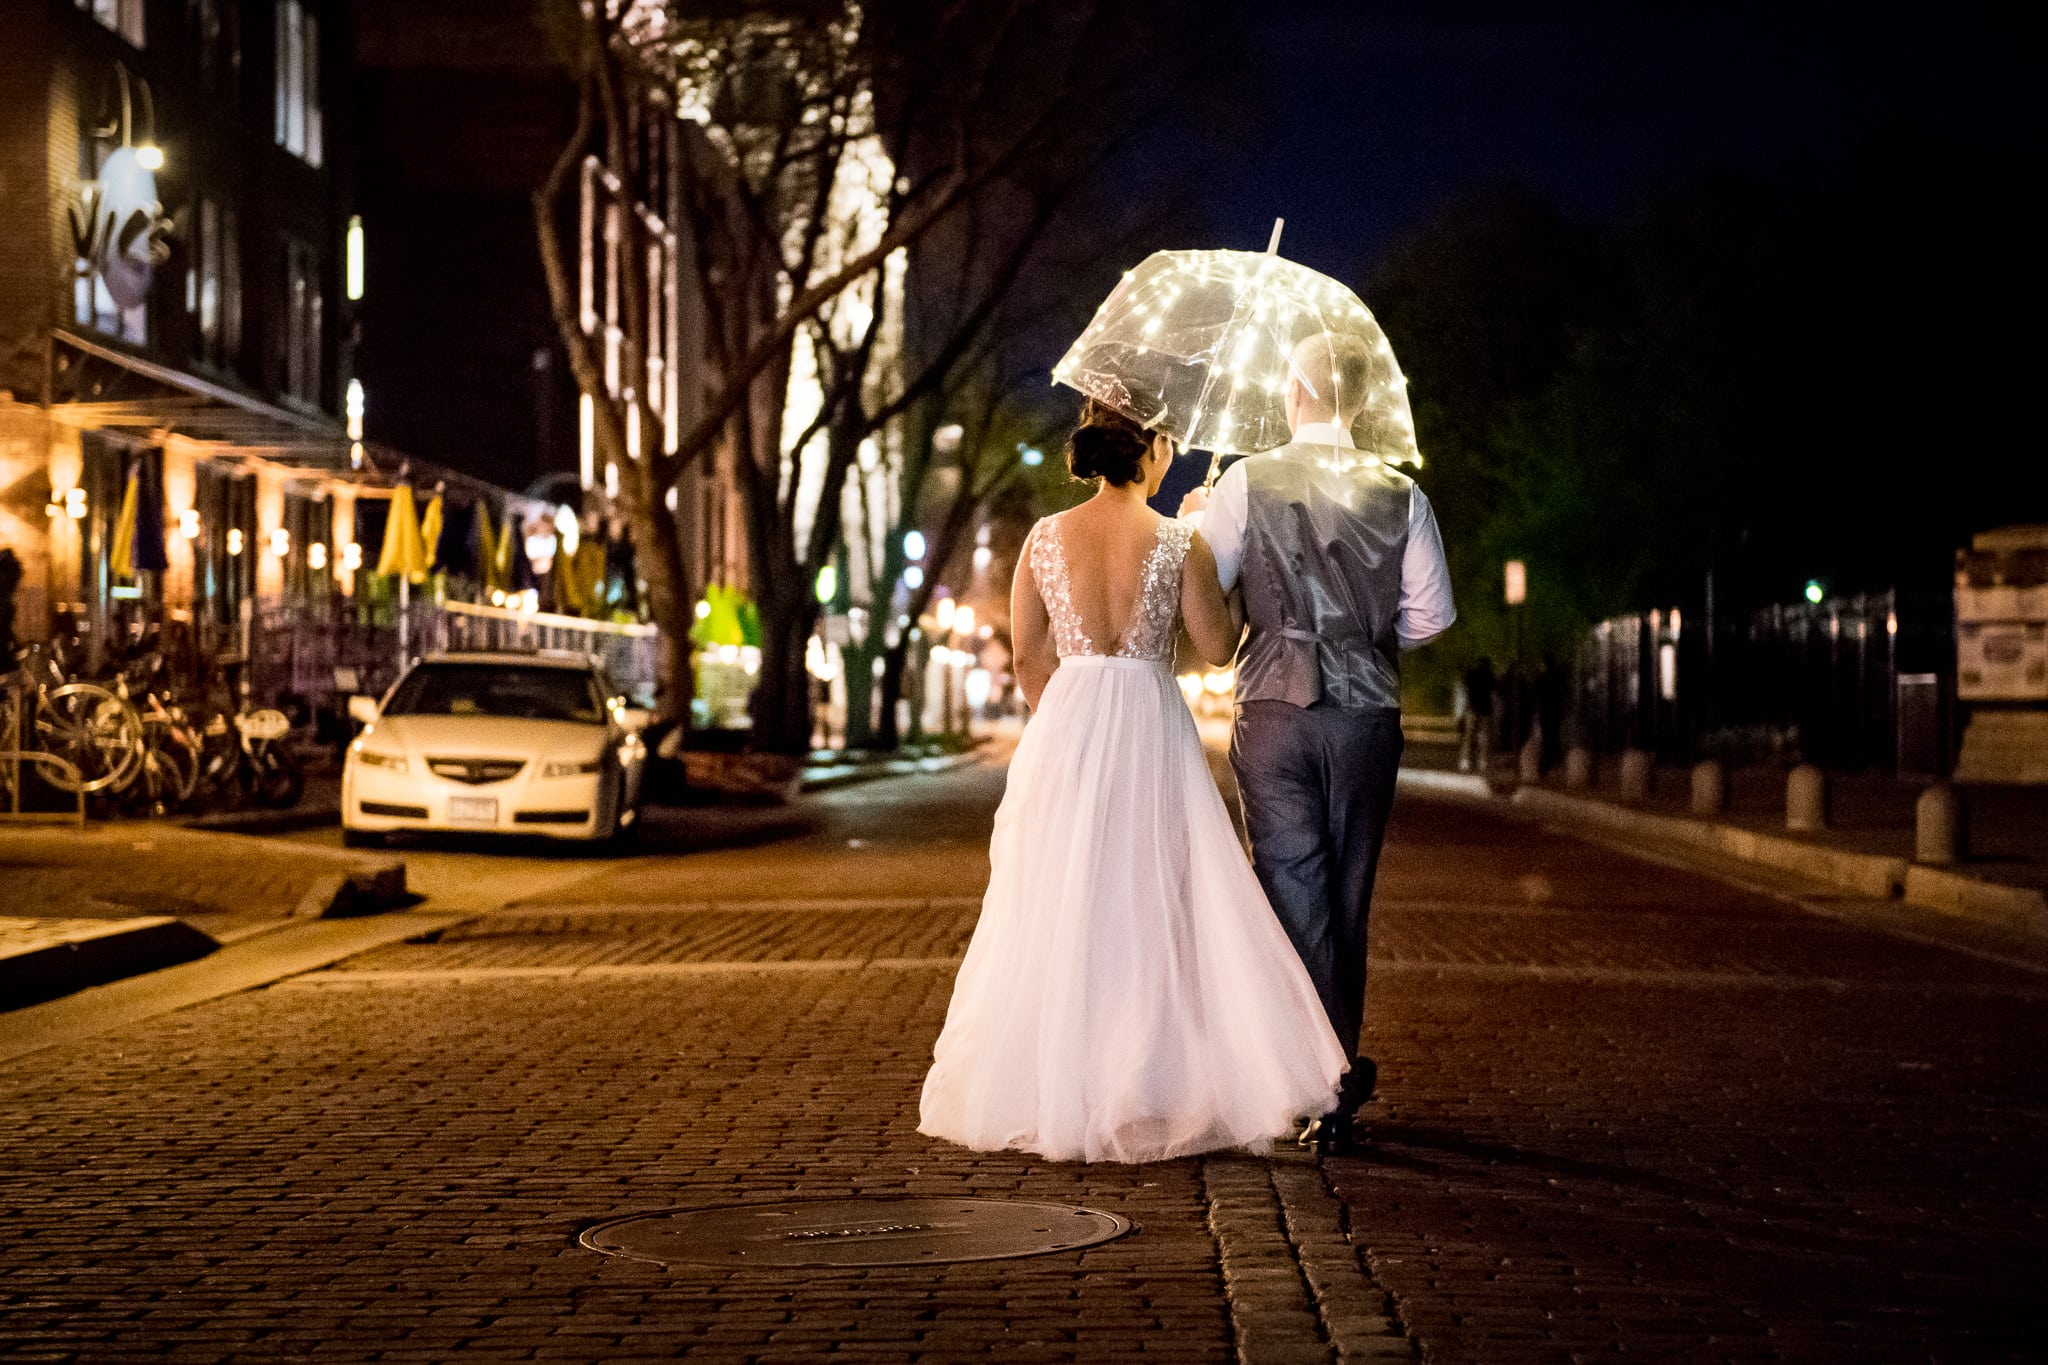 Bride and Groom walking on Main Street under a lit up umbrella just outside of Aster Cafe